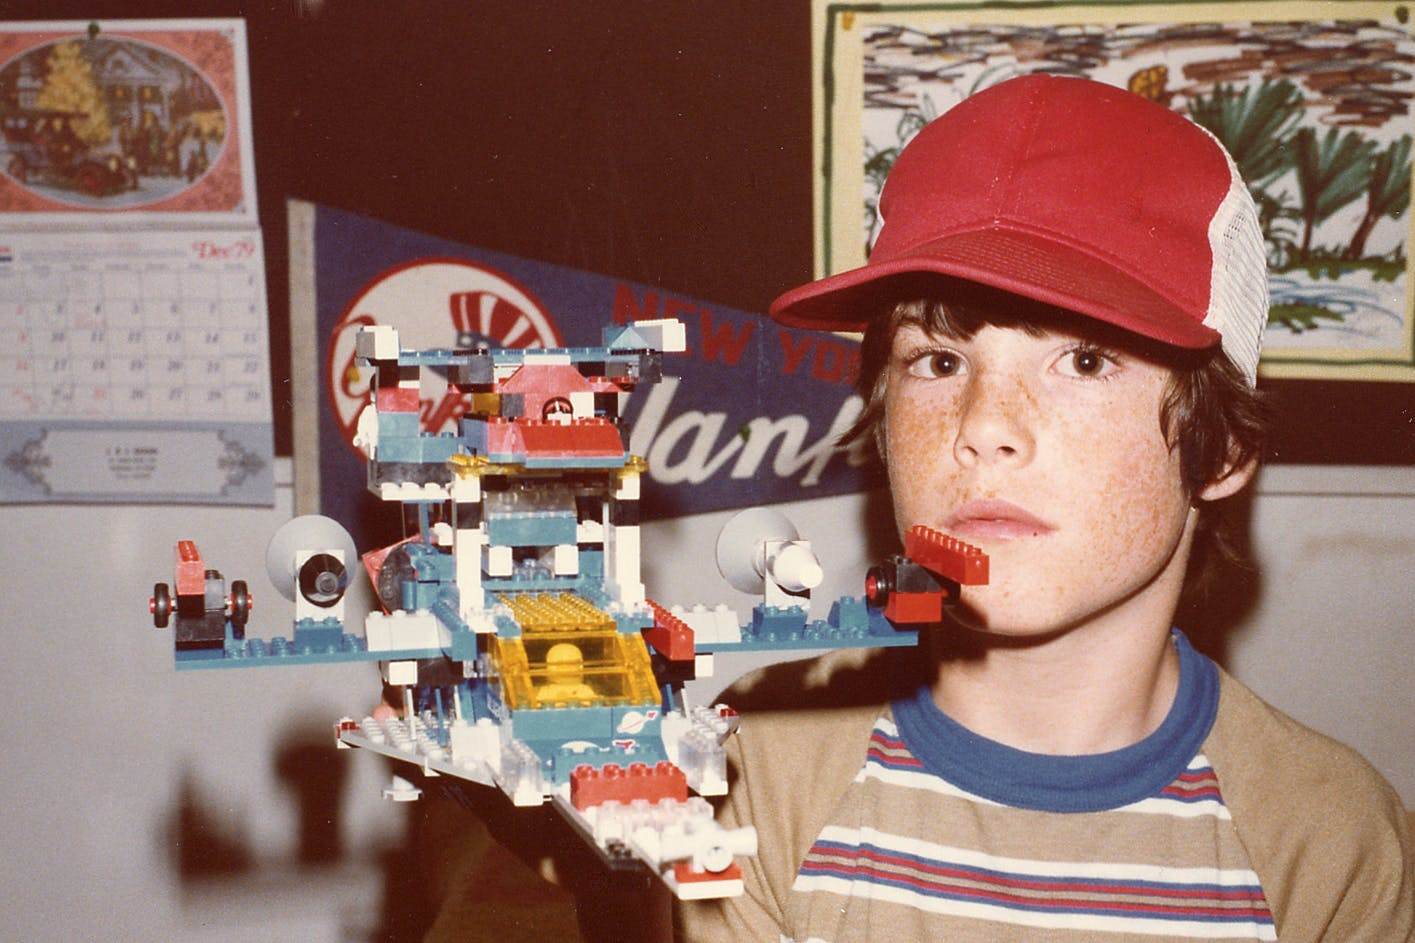 Yours truly with my Lego space cruiser